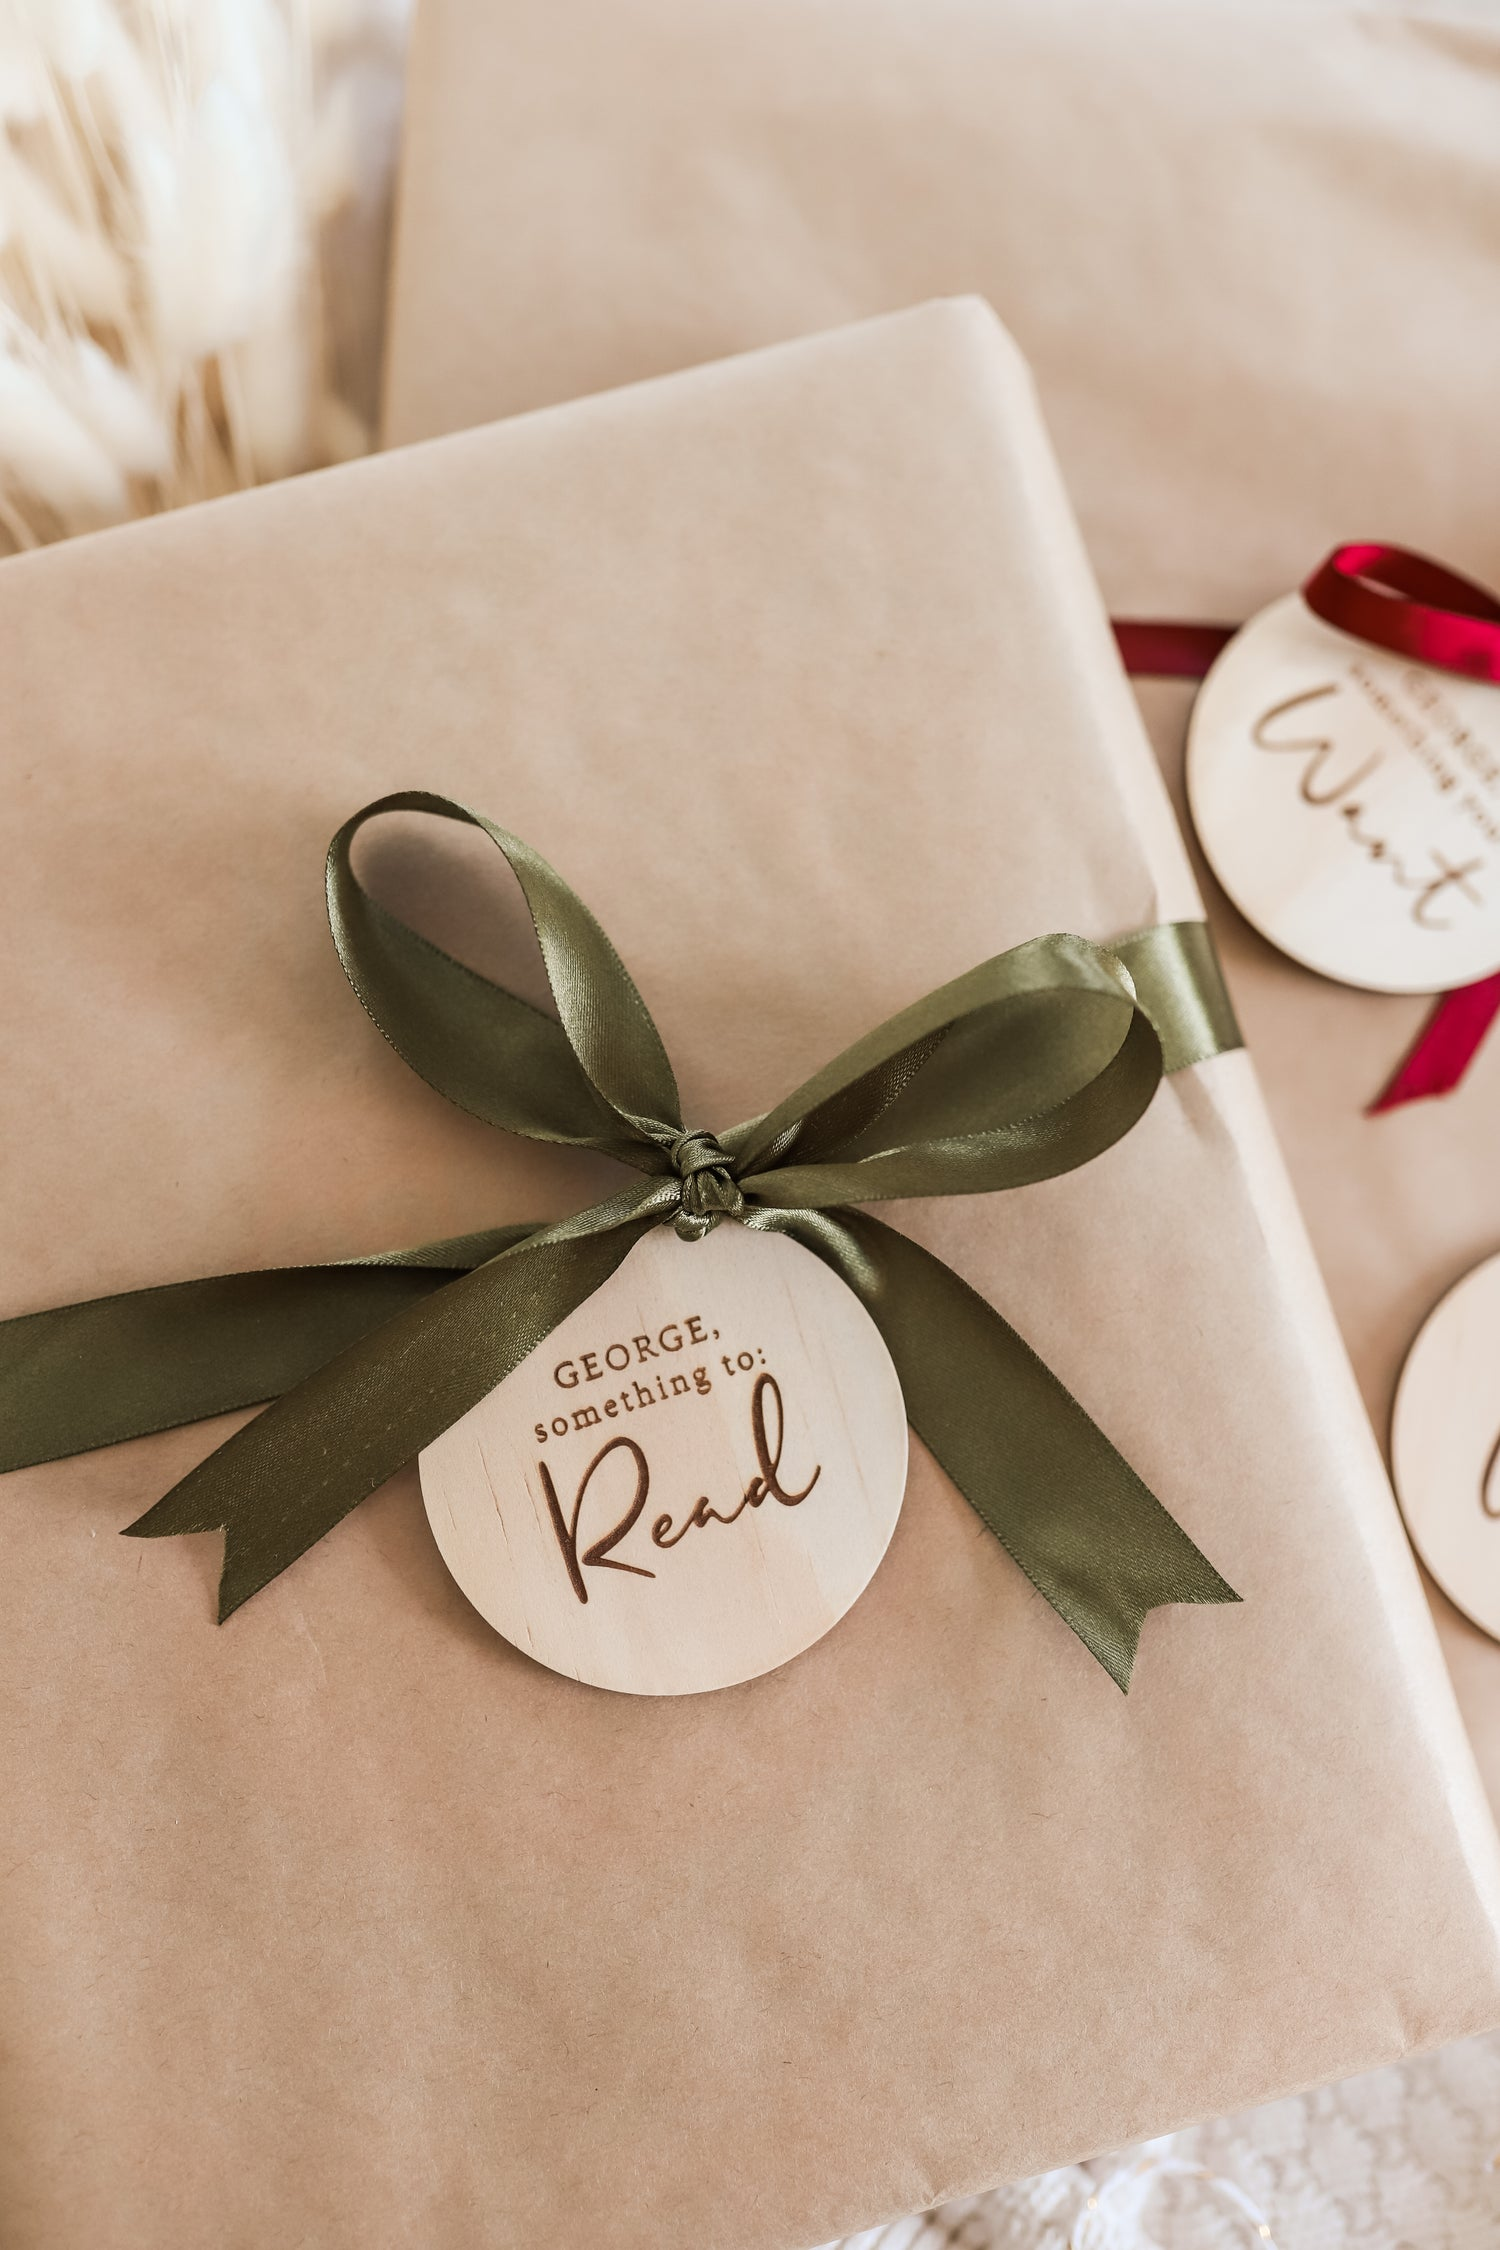 Image of PRE ORDER: Want, need, wear, read   Mindful gifting tags